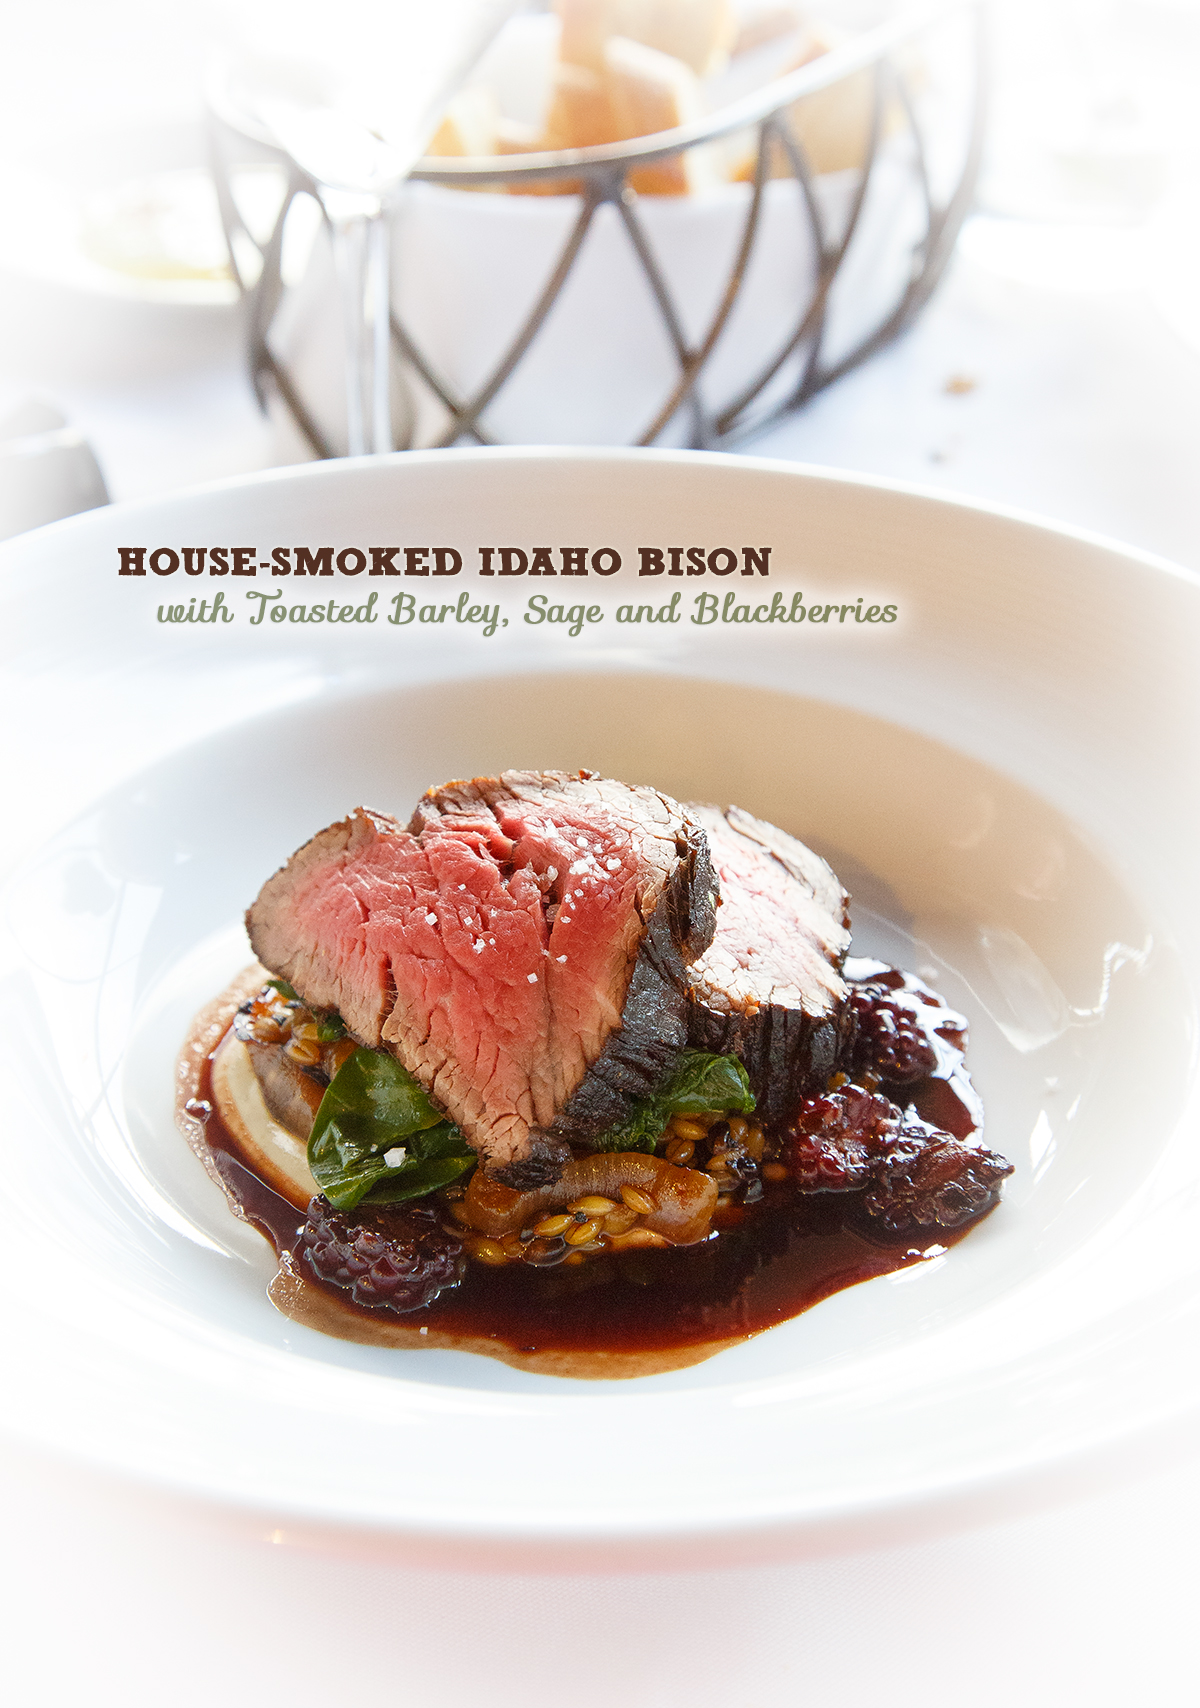 HOUSE-SMOKED IDAHO BISON from the Couloir Restaurant in Jackson, WY